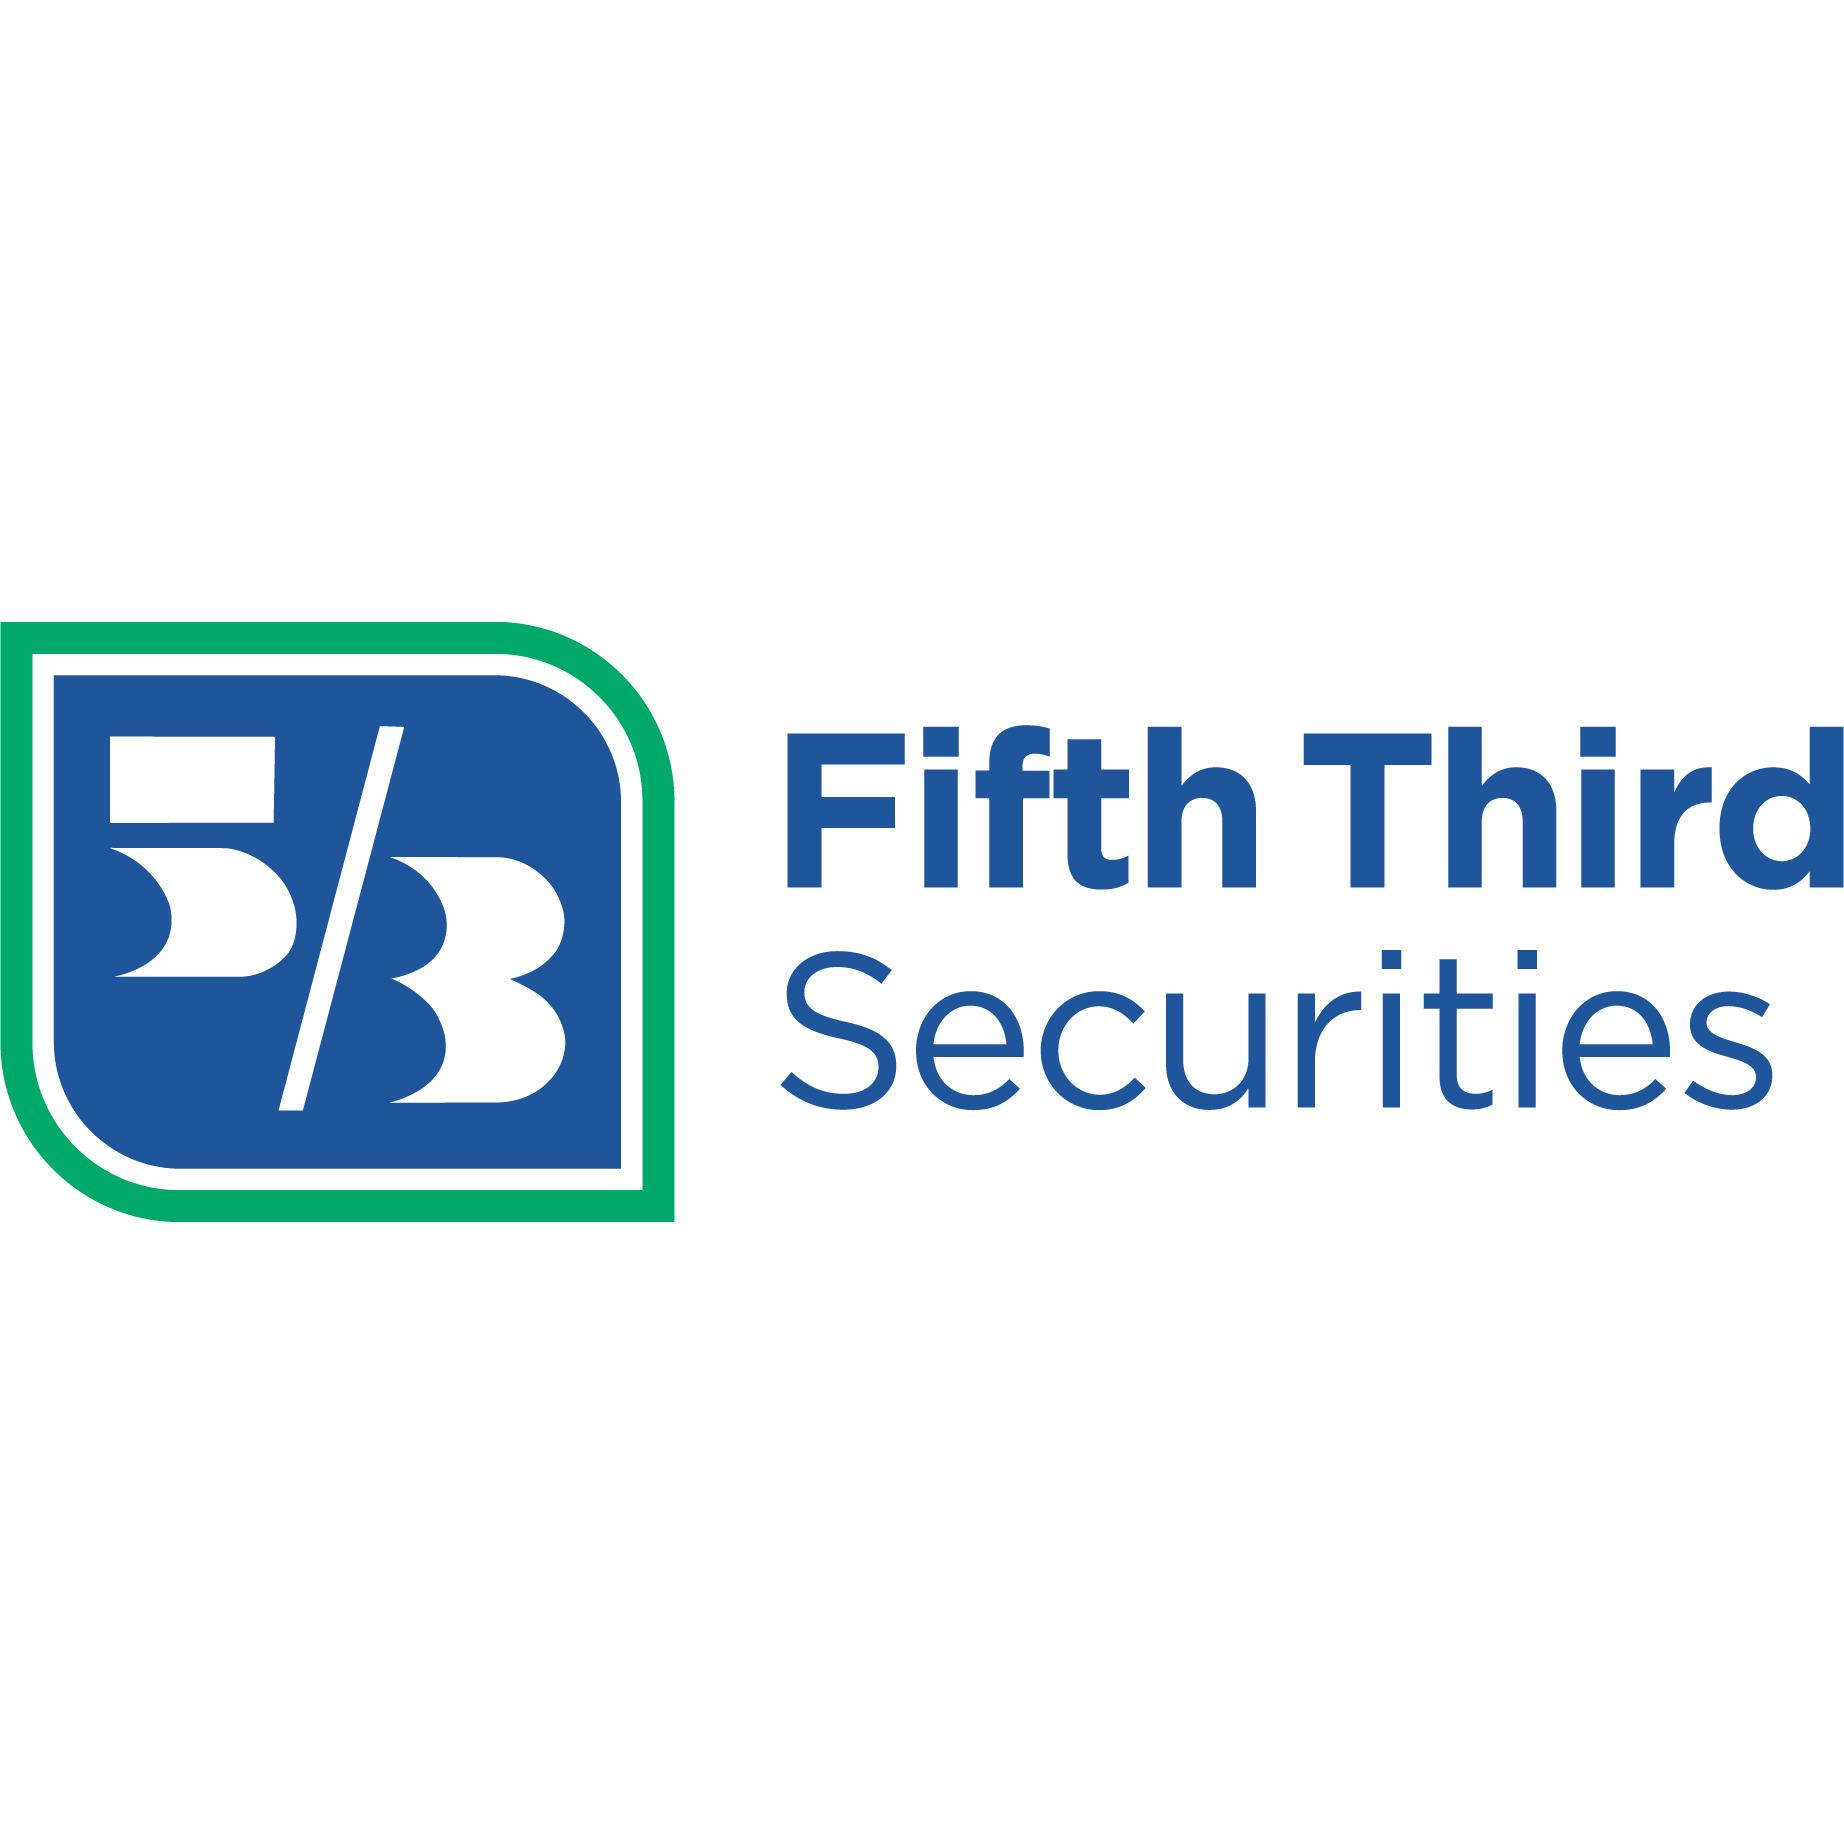 Fifth Third Securities - Travis Harris